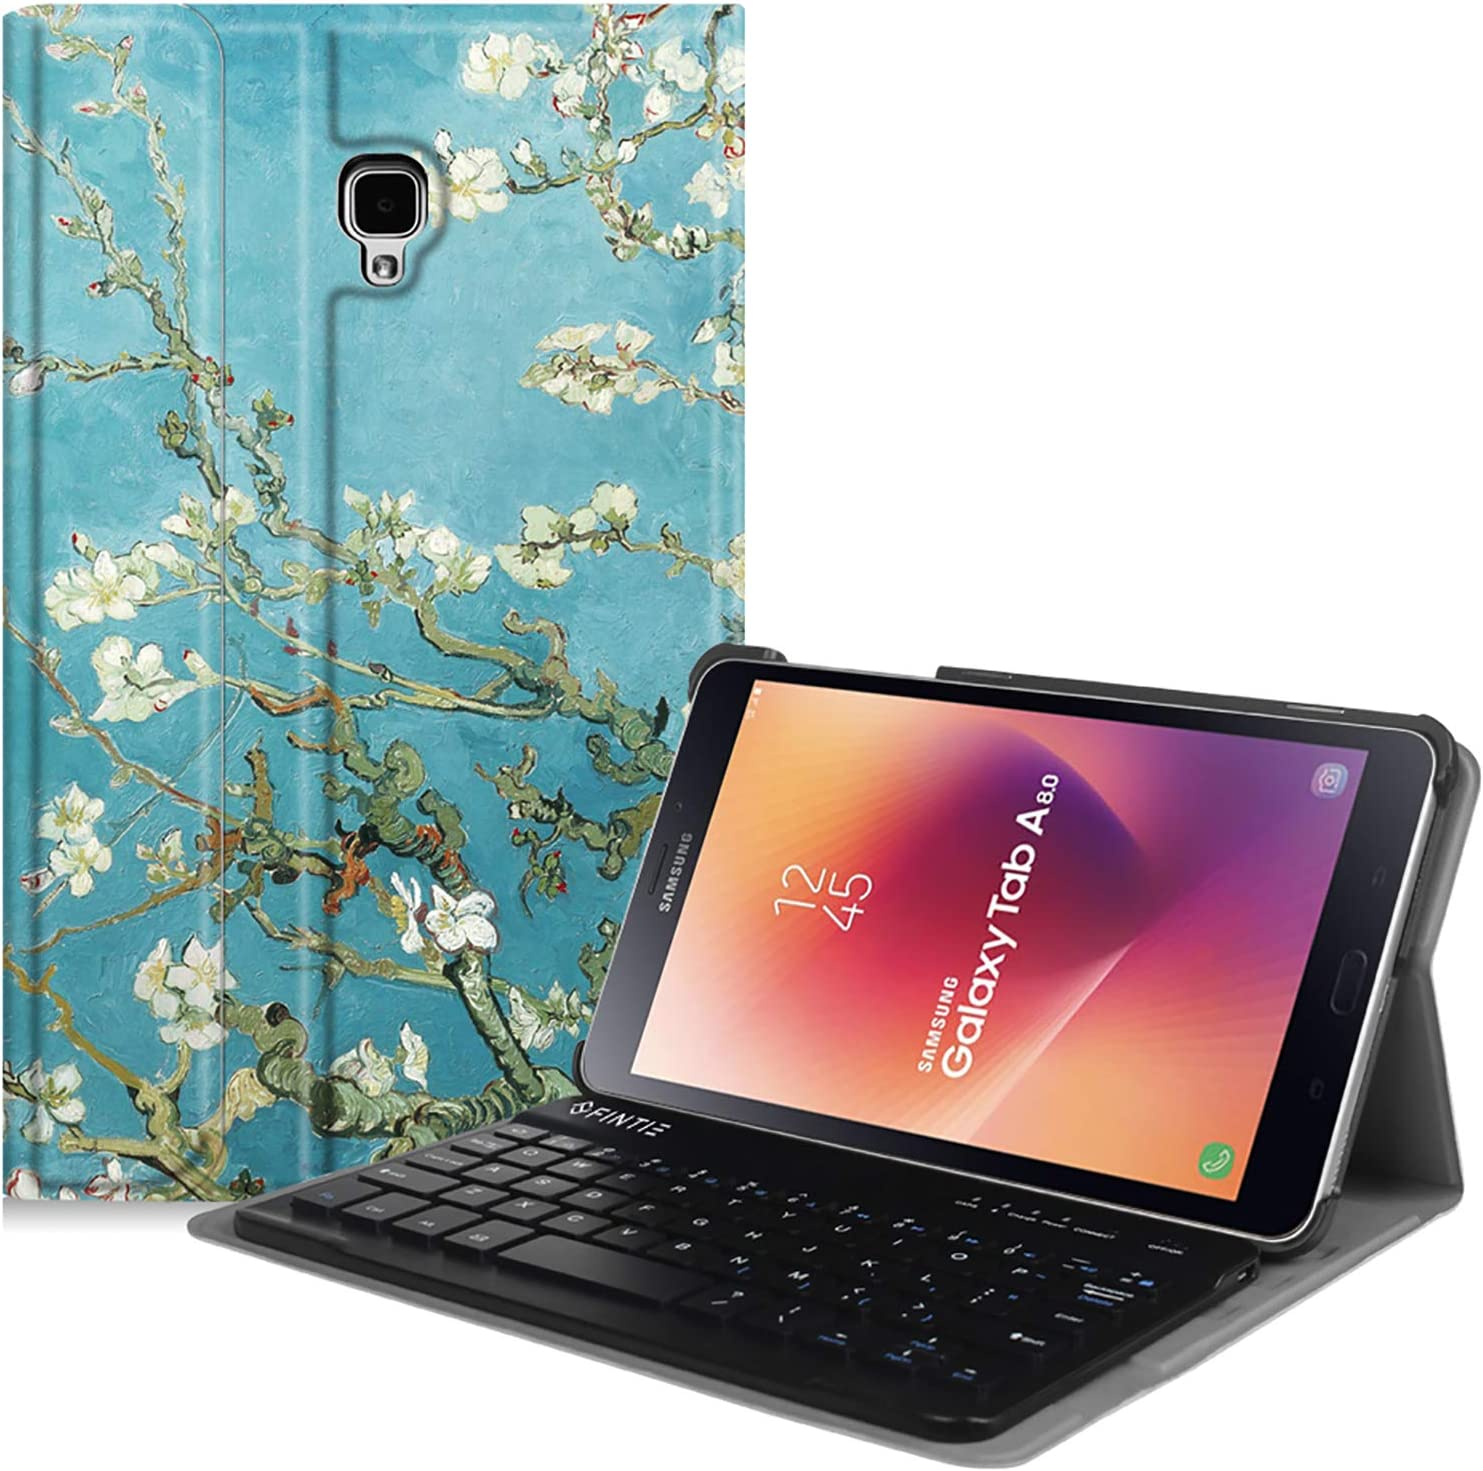 Fintie Keyboard Case for Samsung Galaxy Tab A 8.0 2017 Model T380/T385, Smart Slim Shell Stand Cover with Detachable Wireless Bluetooth Keyboard, Blossom